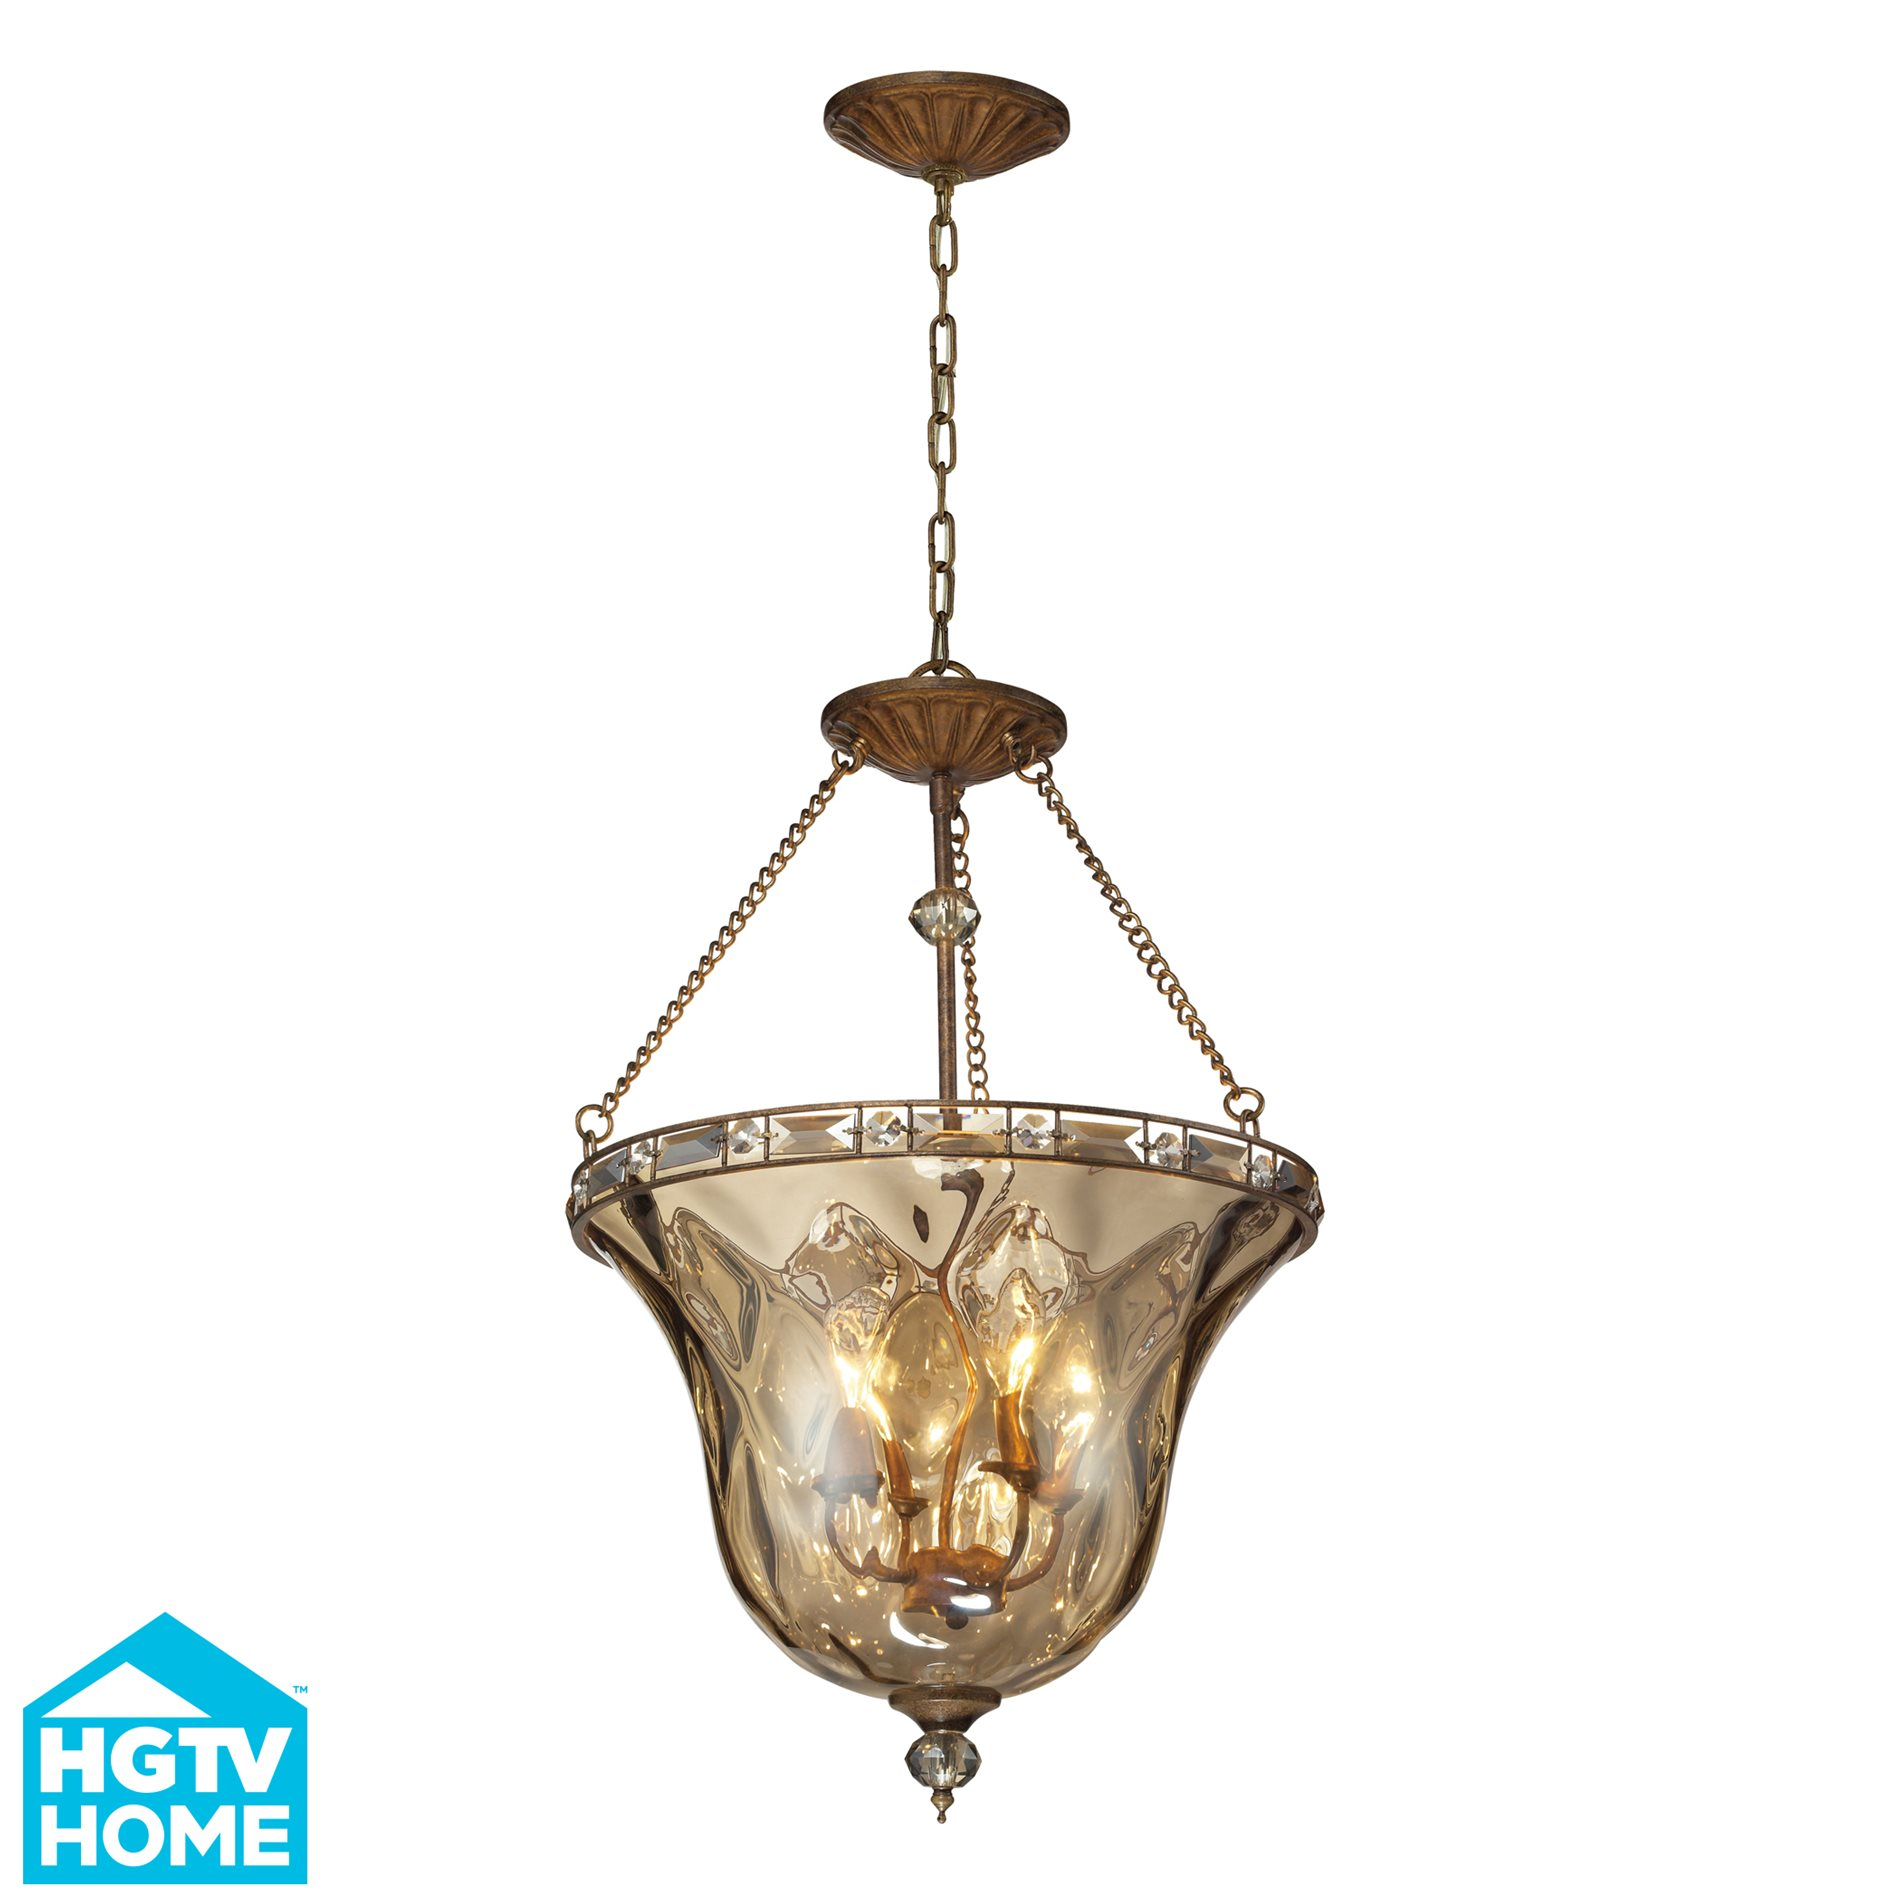 Elk Lighting Fans: HGTV 46022/4 Cheltham Contemporary Inverted Pendant Light